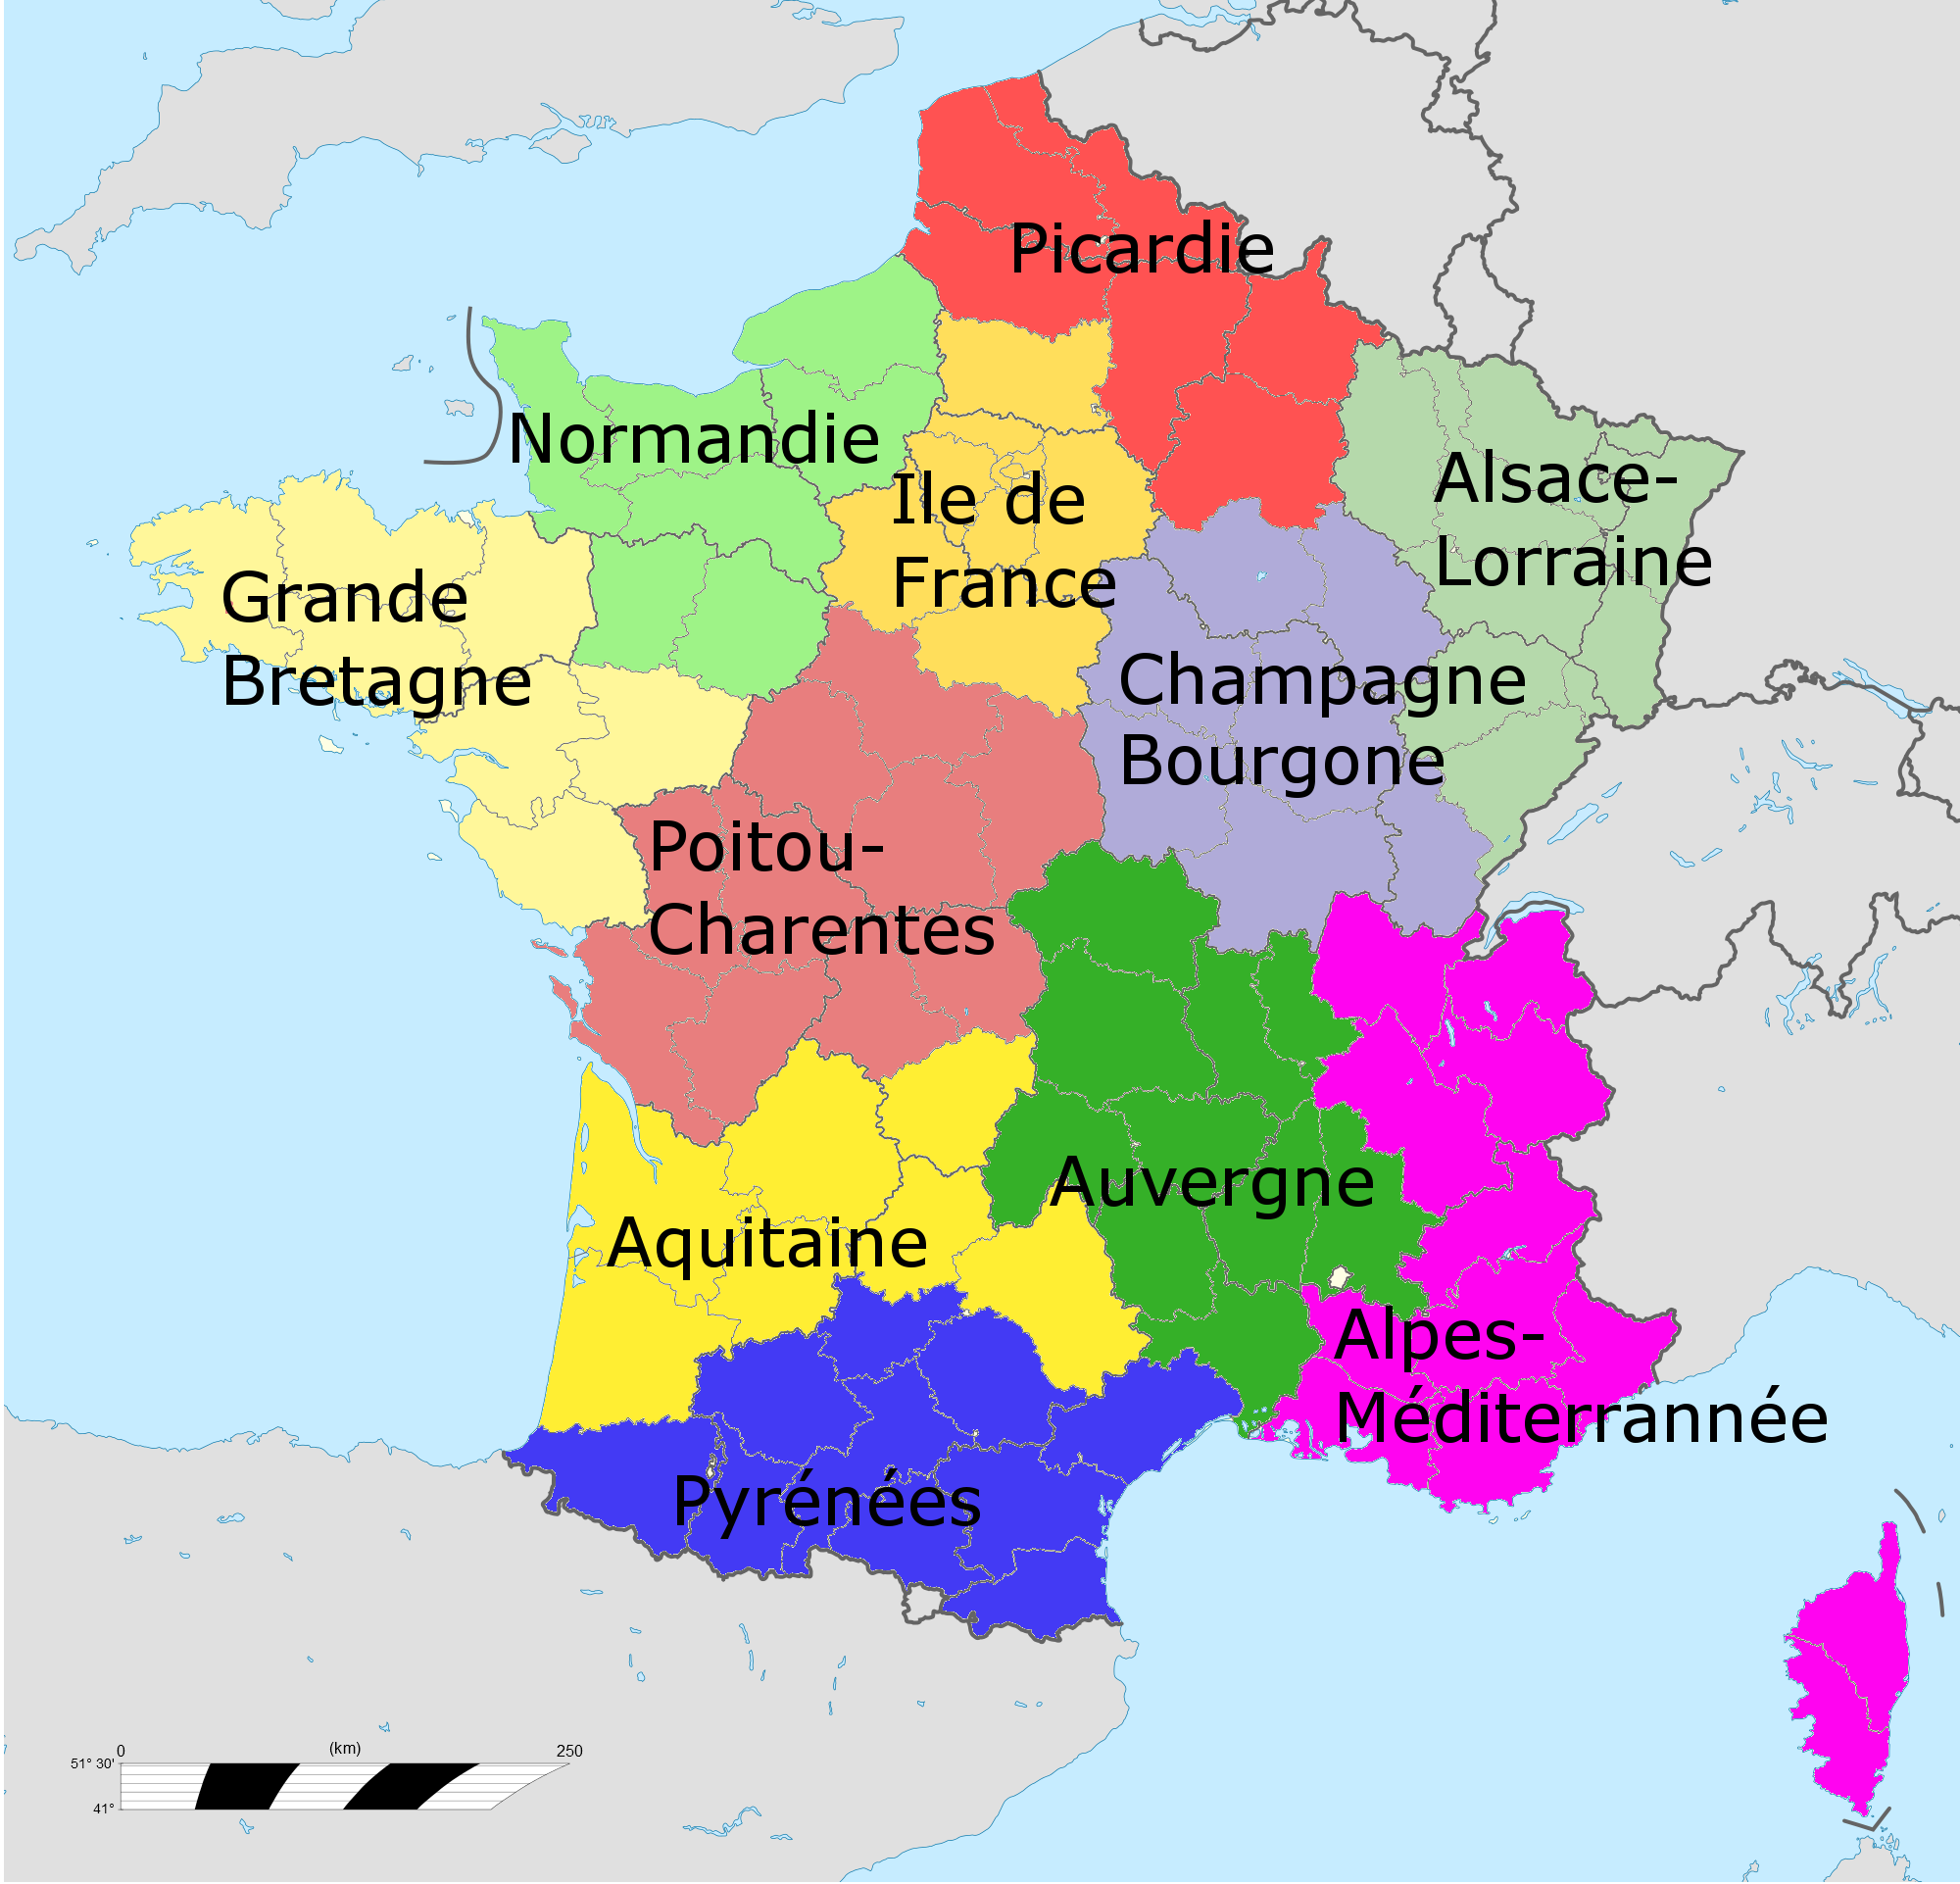 Pin by WriteStuff on WS Ref. (Locale) France Map